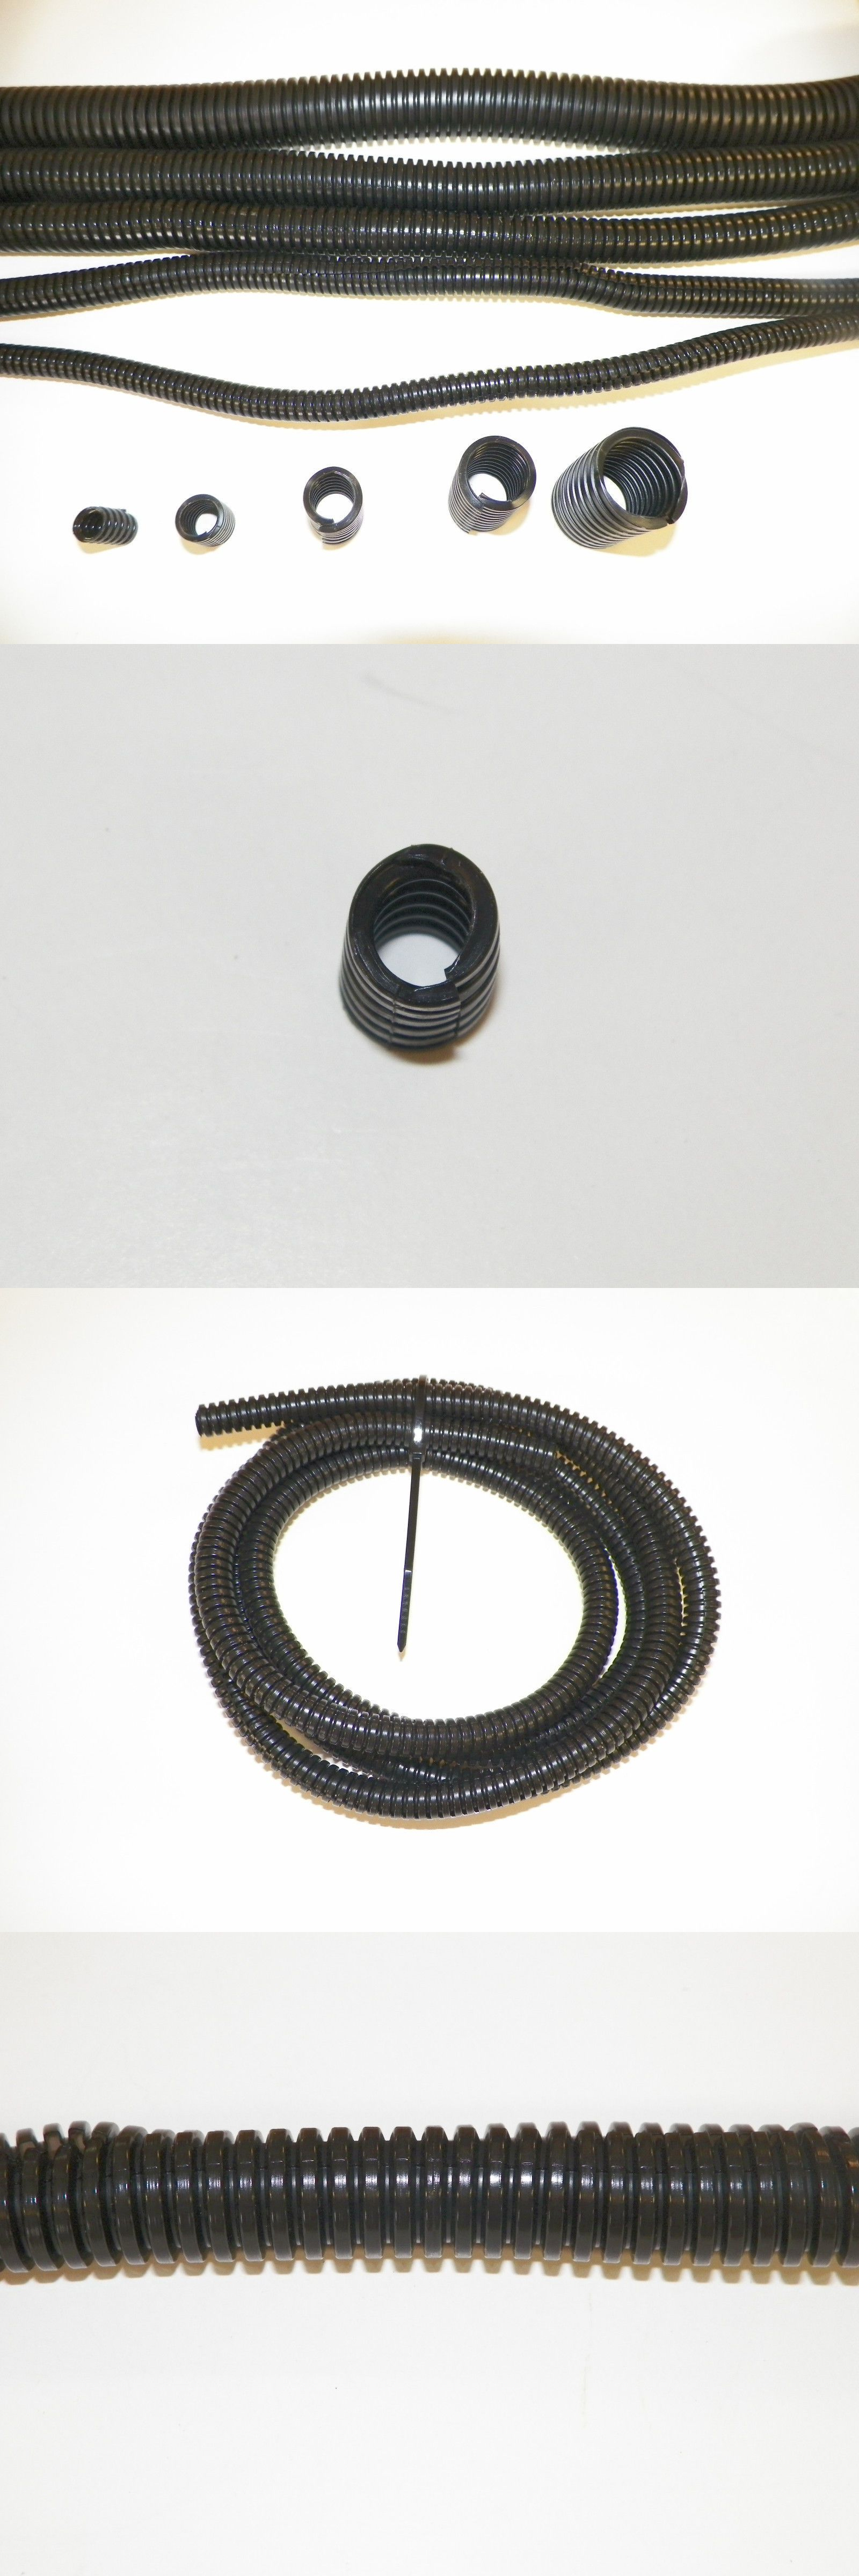 hight resolution of other crafts 75576 black split sleeve wiring harness loom flexable wire cover protection flex